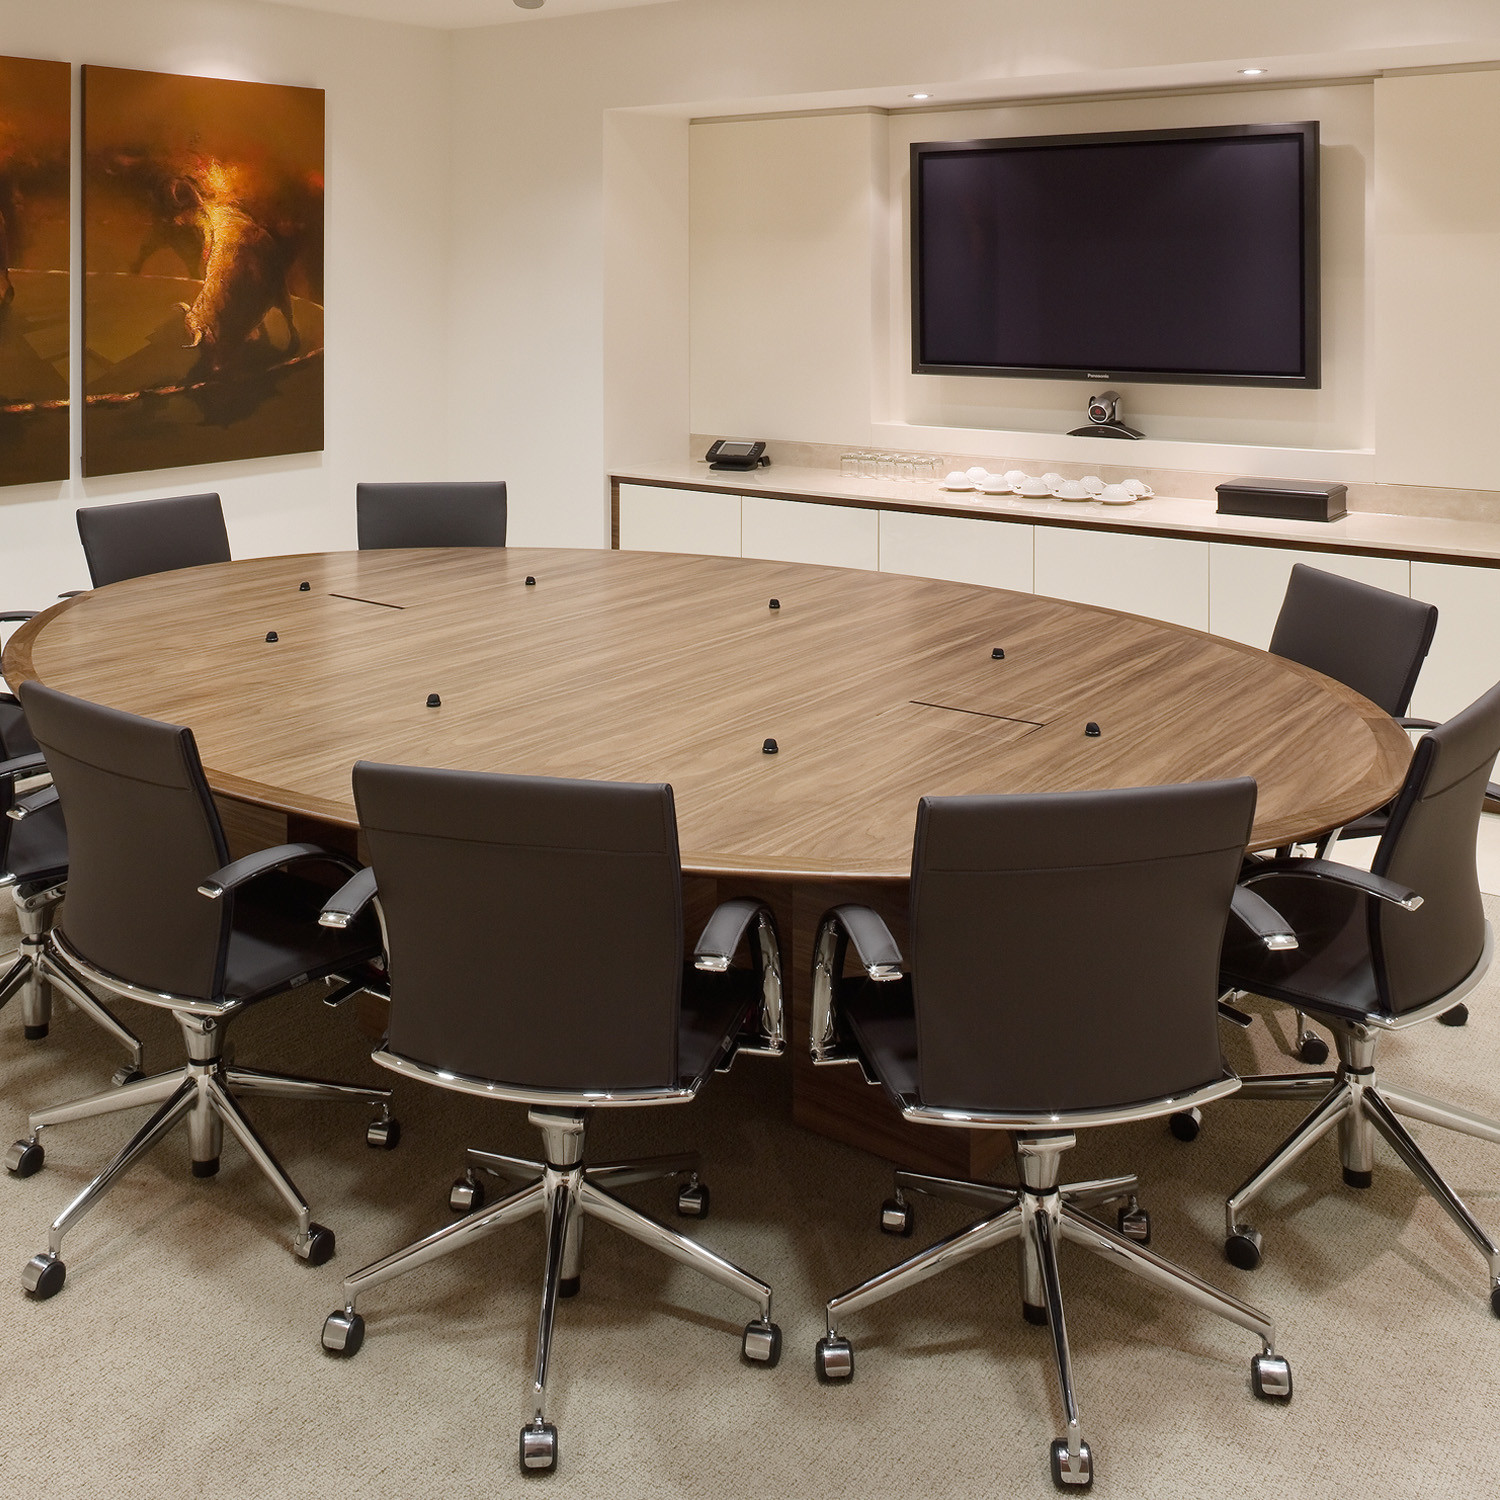 Apres Bespoke Conference Tables